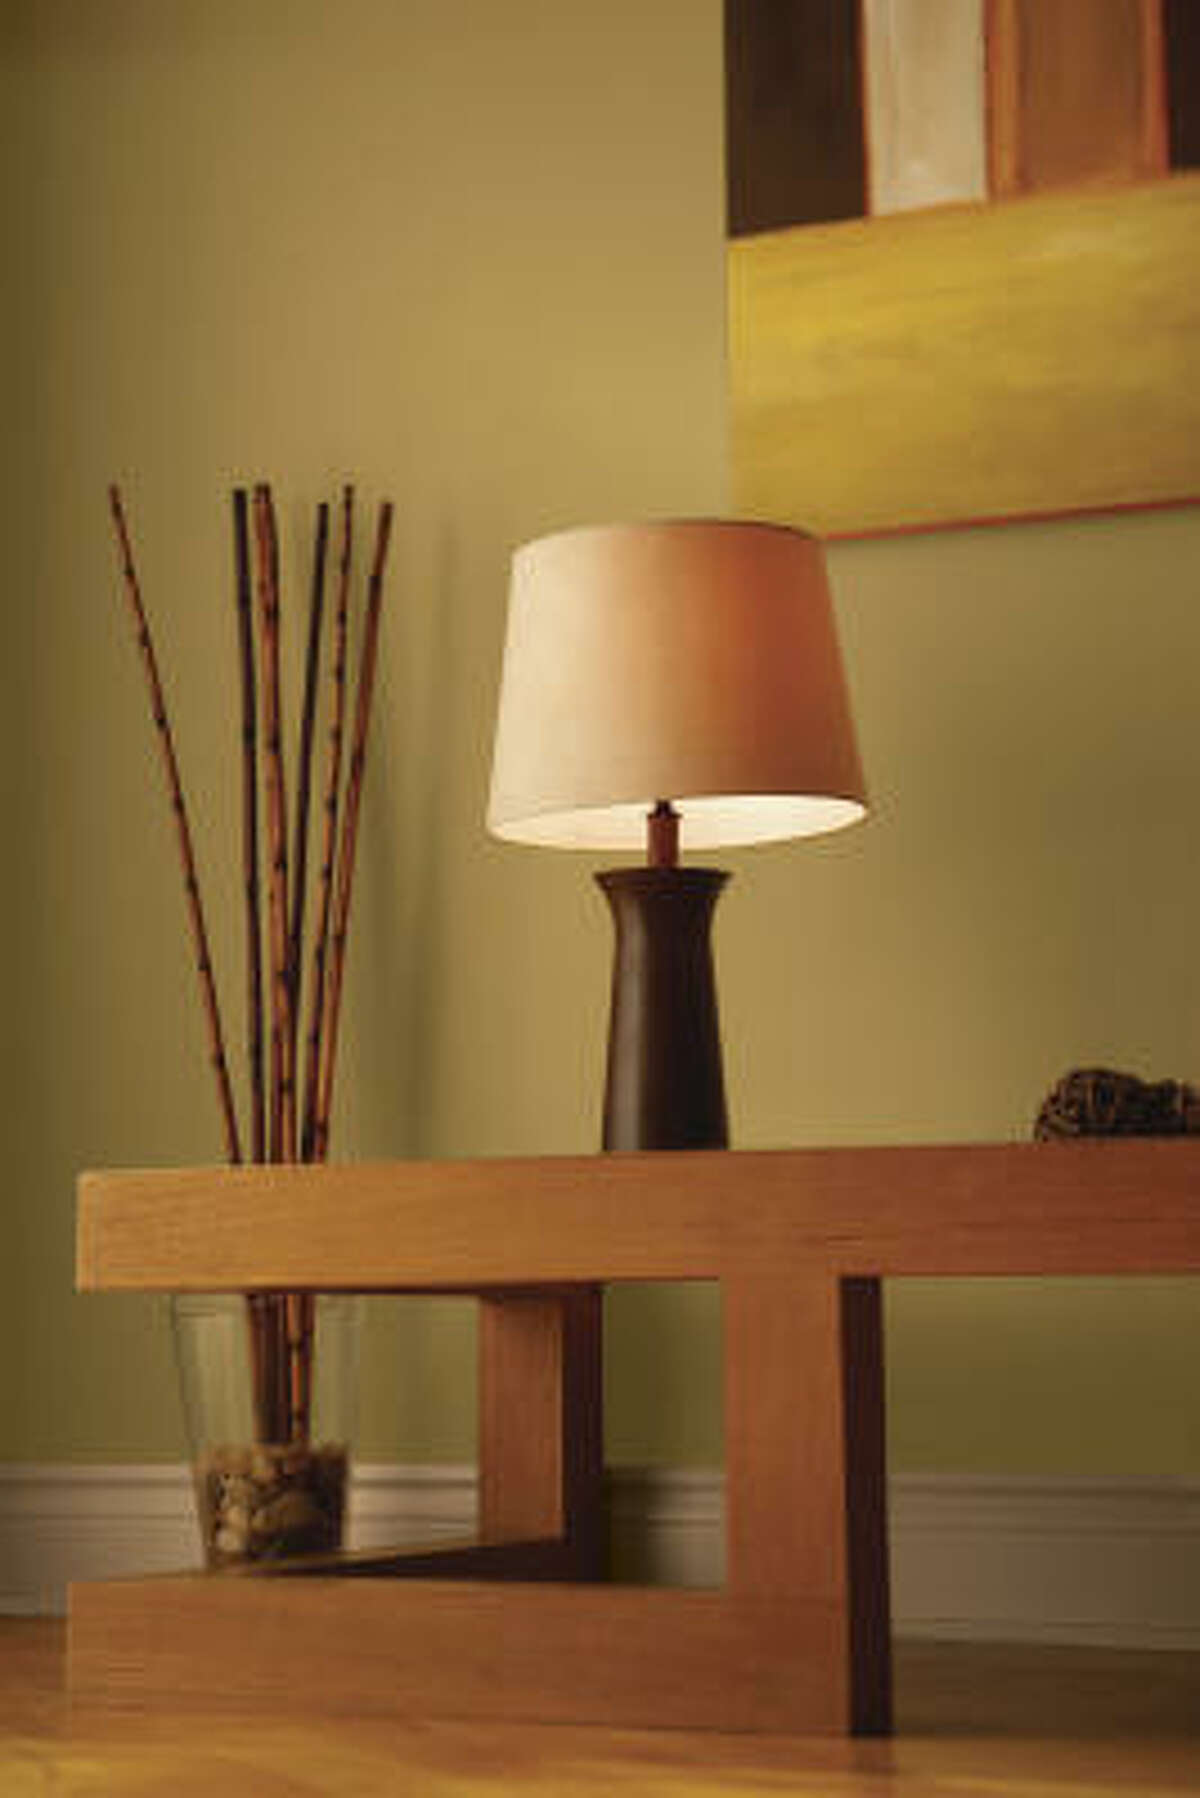 A table lamp is another way to layer lighting.